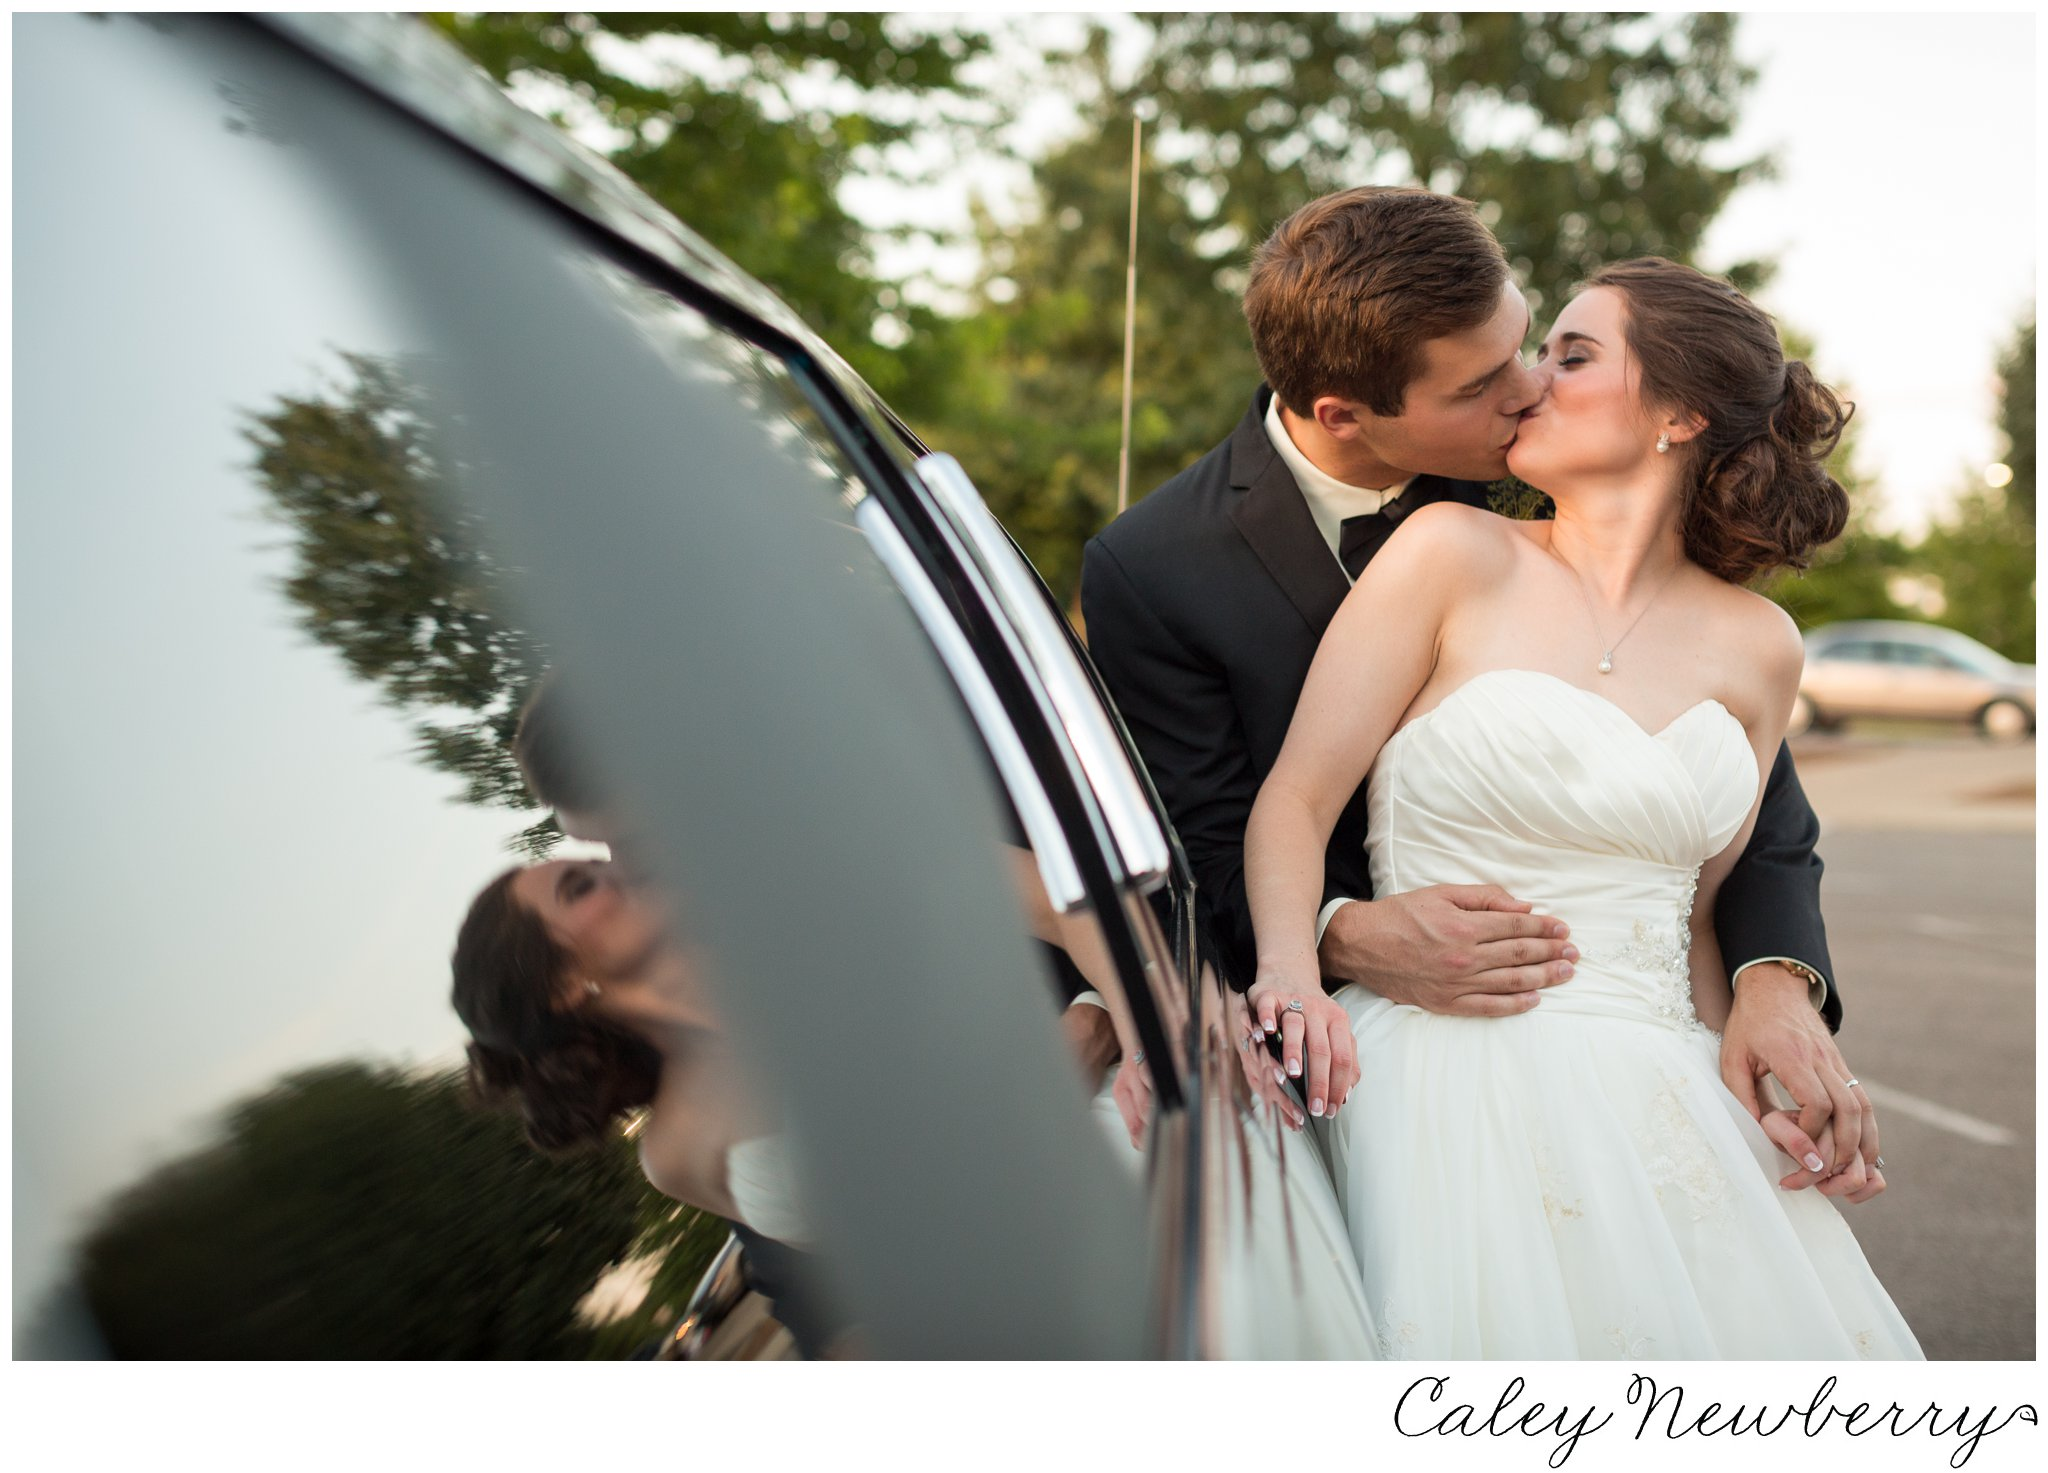 wedding-photos-with-limousine.jpg